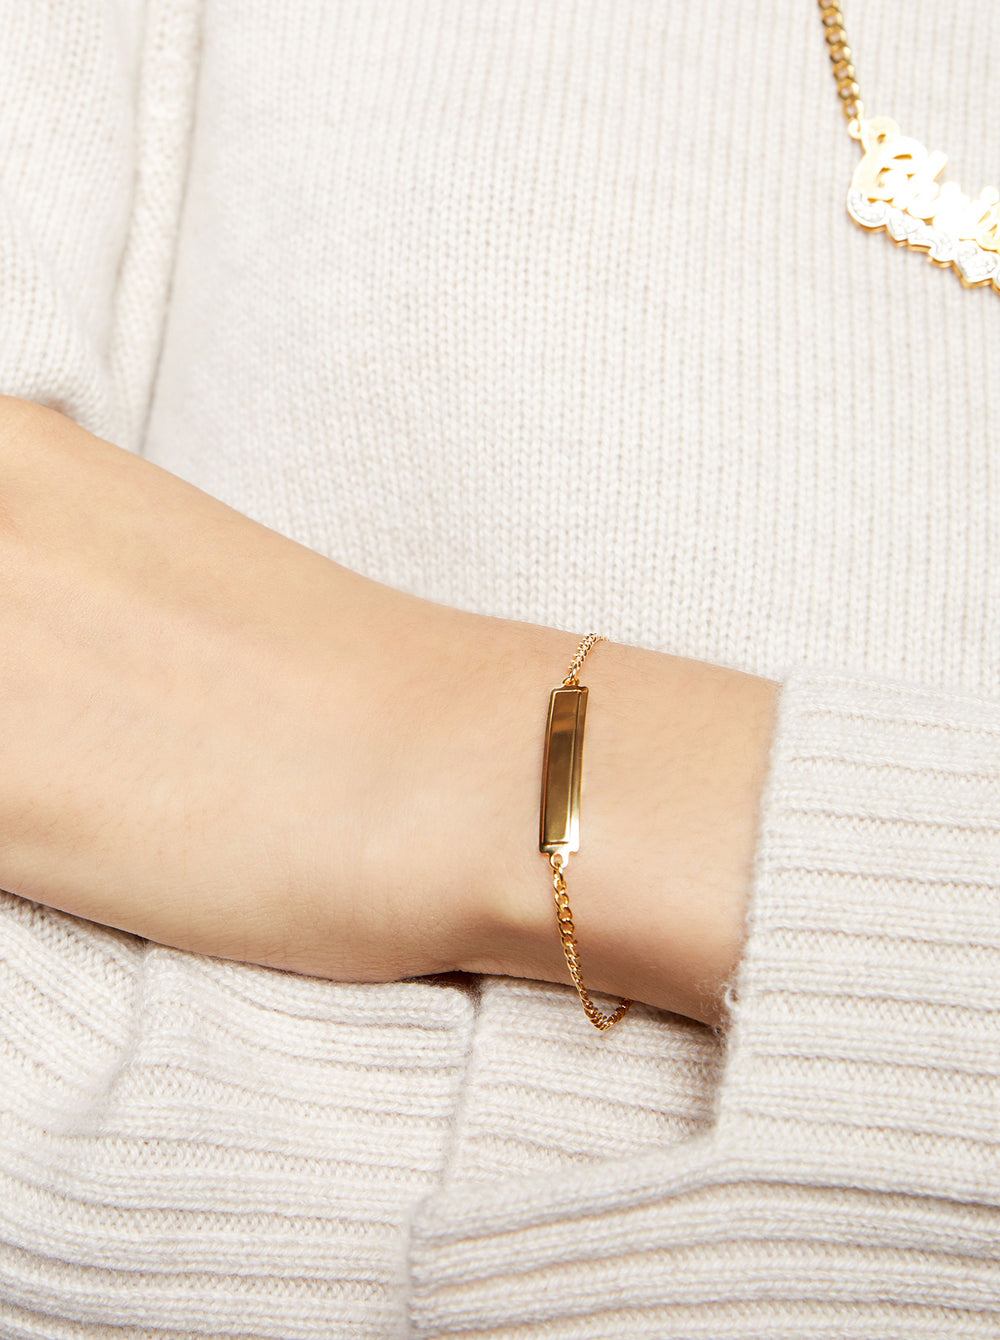 THE ESSENTIAL TINY ID BRACELET